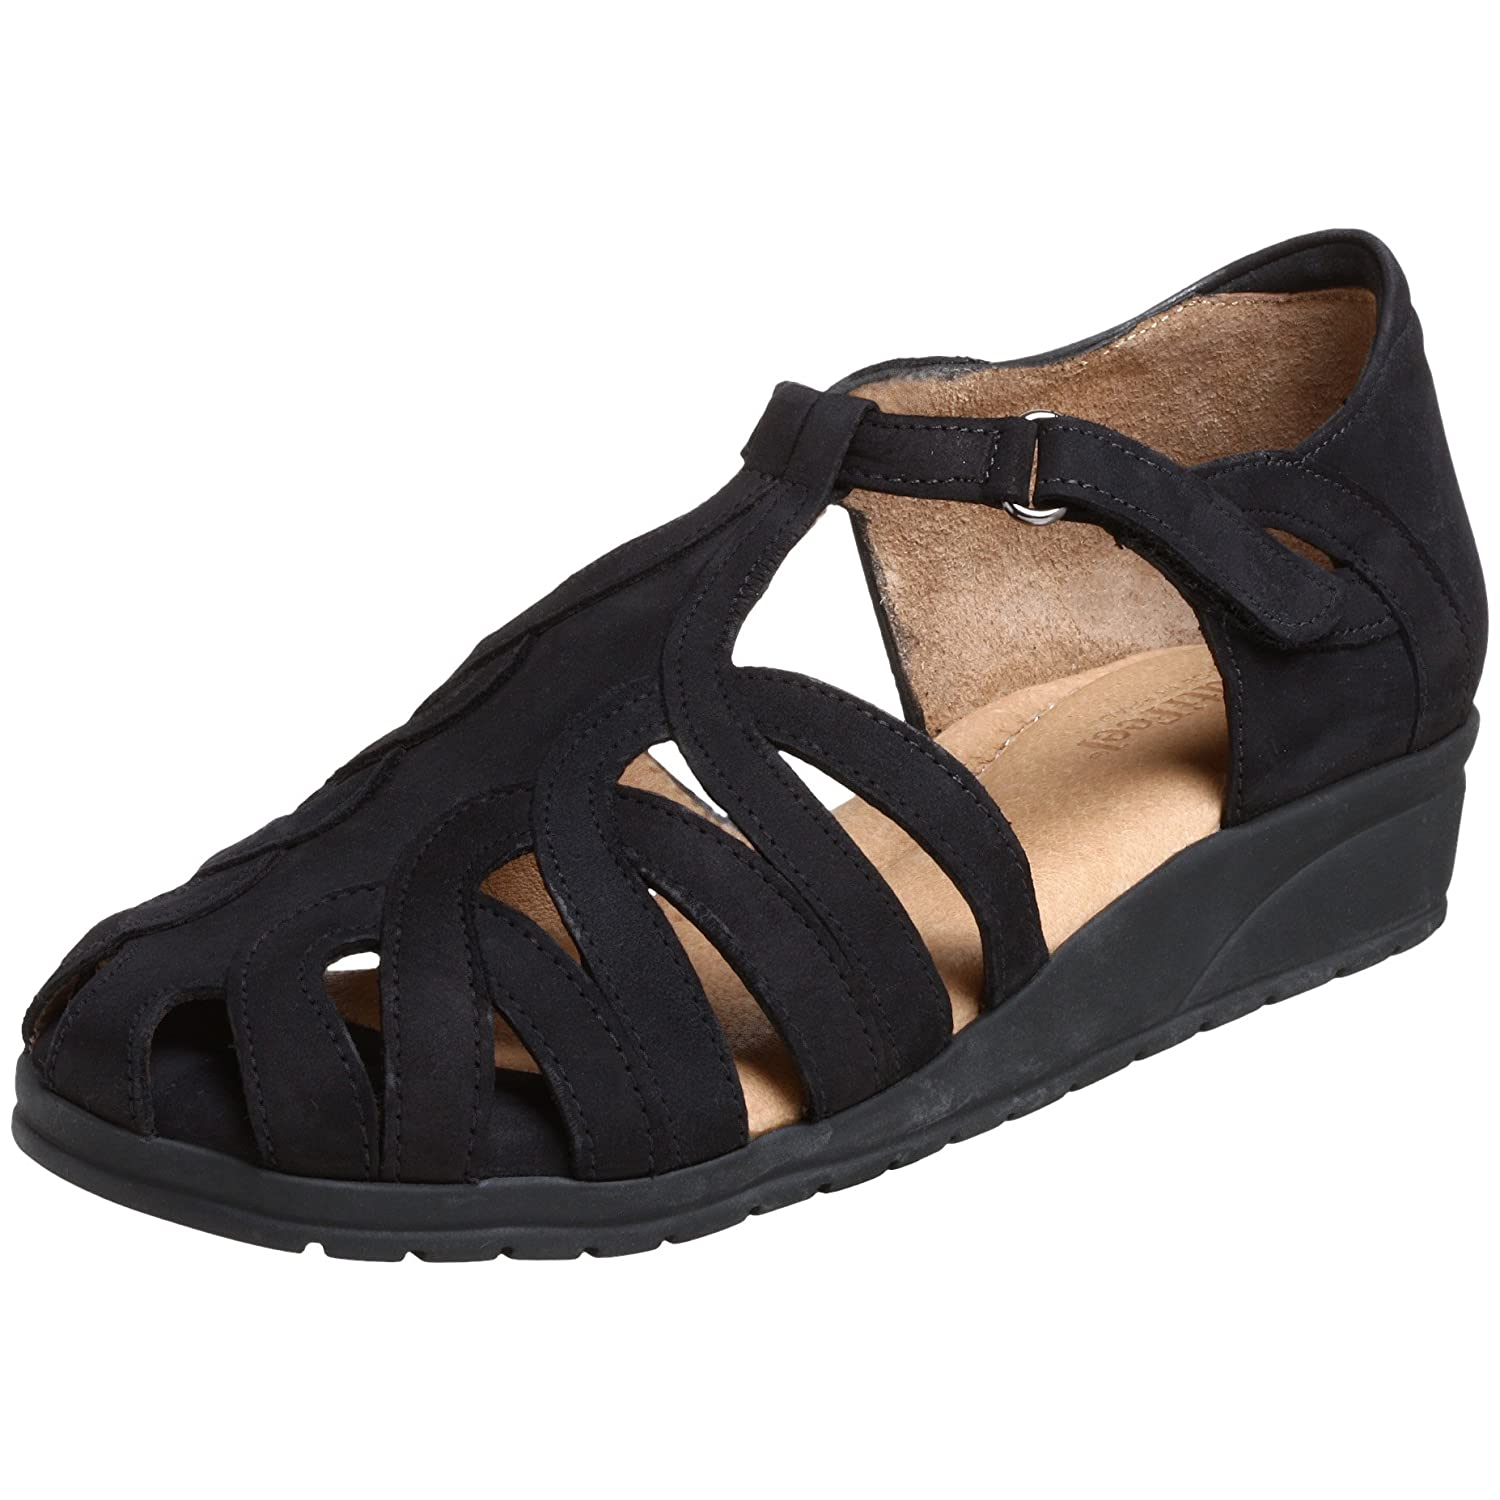 BeautiFeel Women's Brazil Wedge Sandal B001395SJK 37 EU (US Women's 7 M)|Black Nubuck